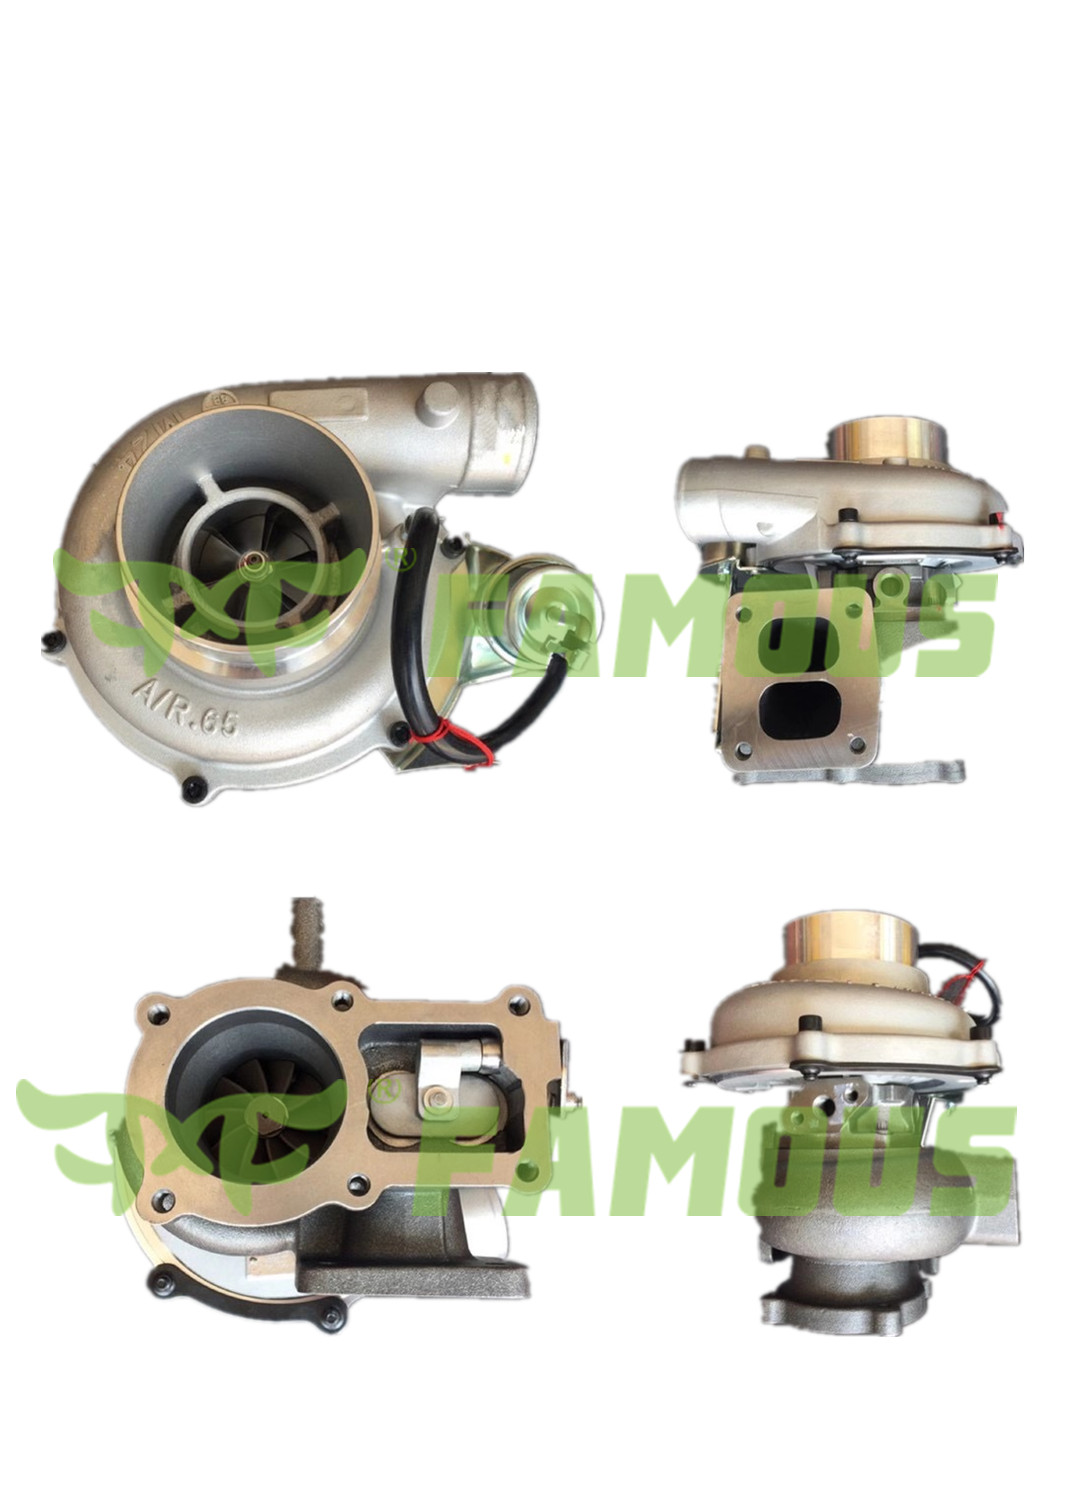 14201-z5905 702172-12 17030706 GT3576DL 6hk1 turbo for isuzu